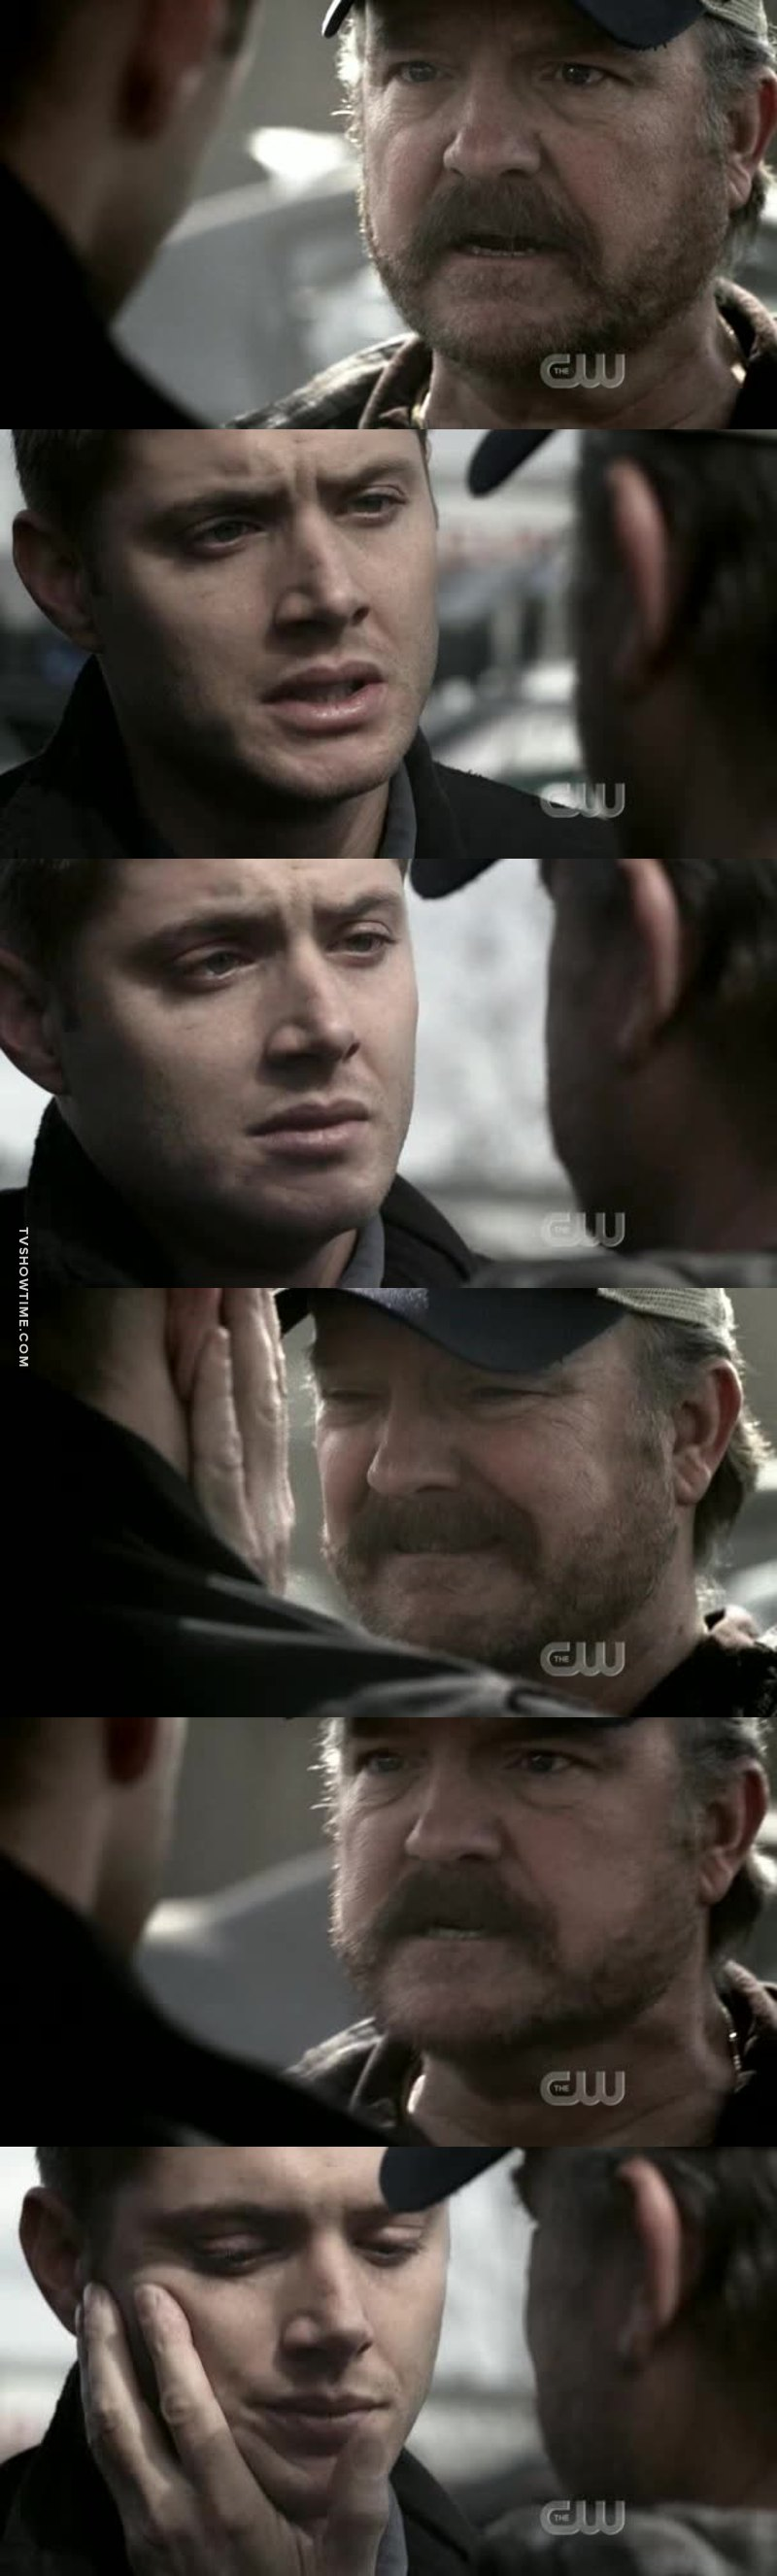 This scene just kills me. The emotion between them. Bobbly truly is like their dad. The range of emotion in the scene between the both of them, Bobby's anger, Dean's acceptance,  Bobby understanding and then the sorrowful helplessness.  It just kills me.